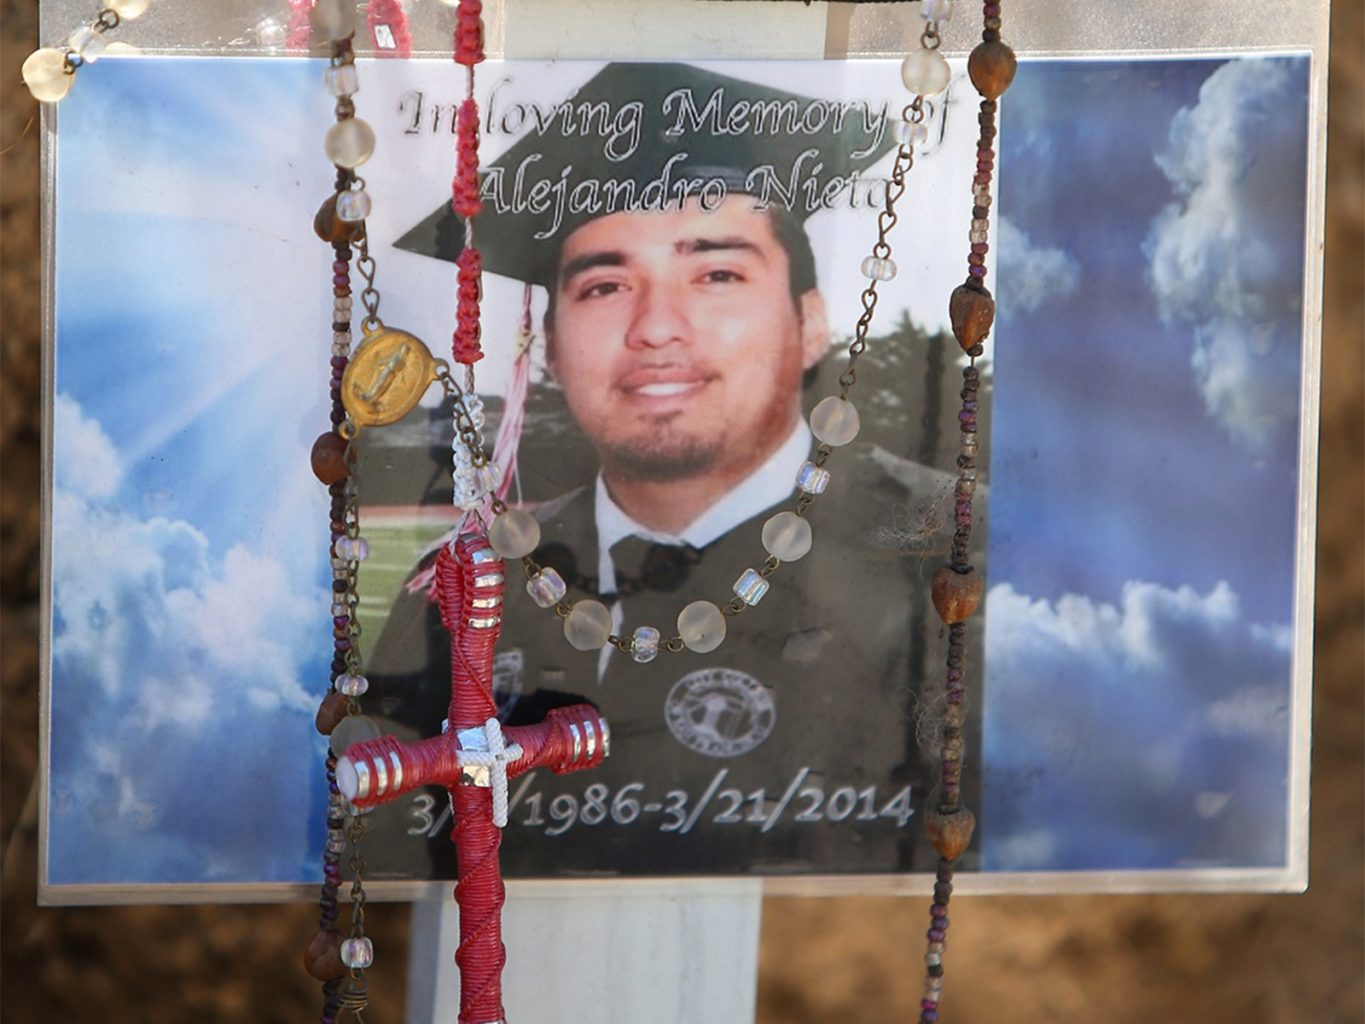 Alejandro Nieto was shot and killed by San Francisco police at Bernal Heights Park on March 21, 2014. (Mike Koozmin/S.F. Examiner file photo)